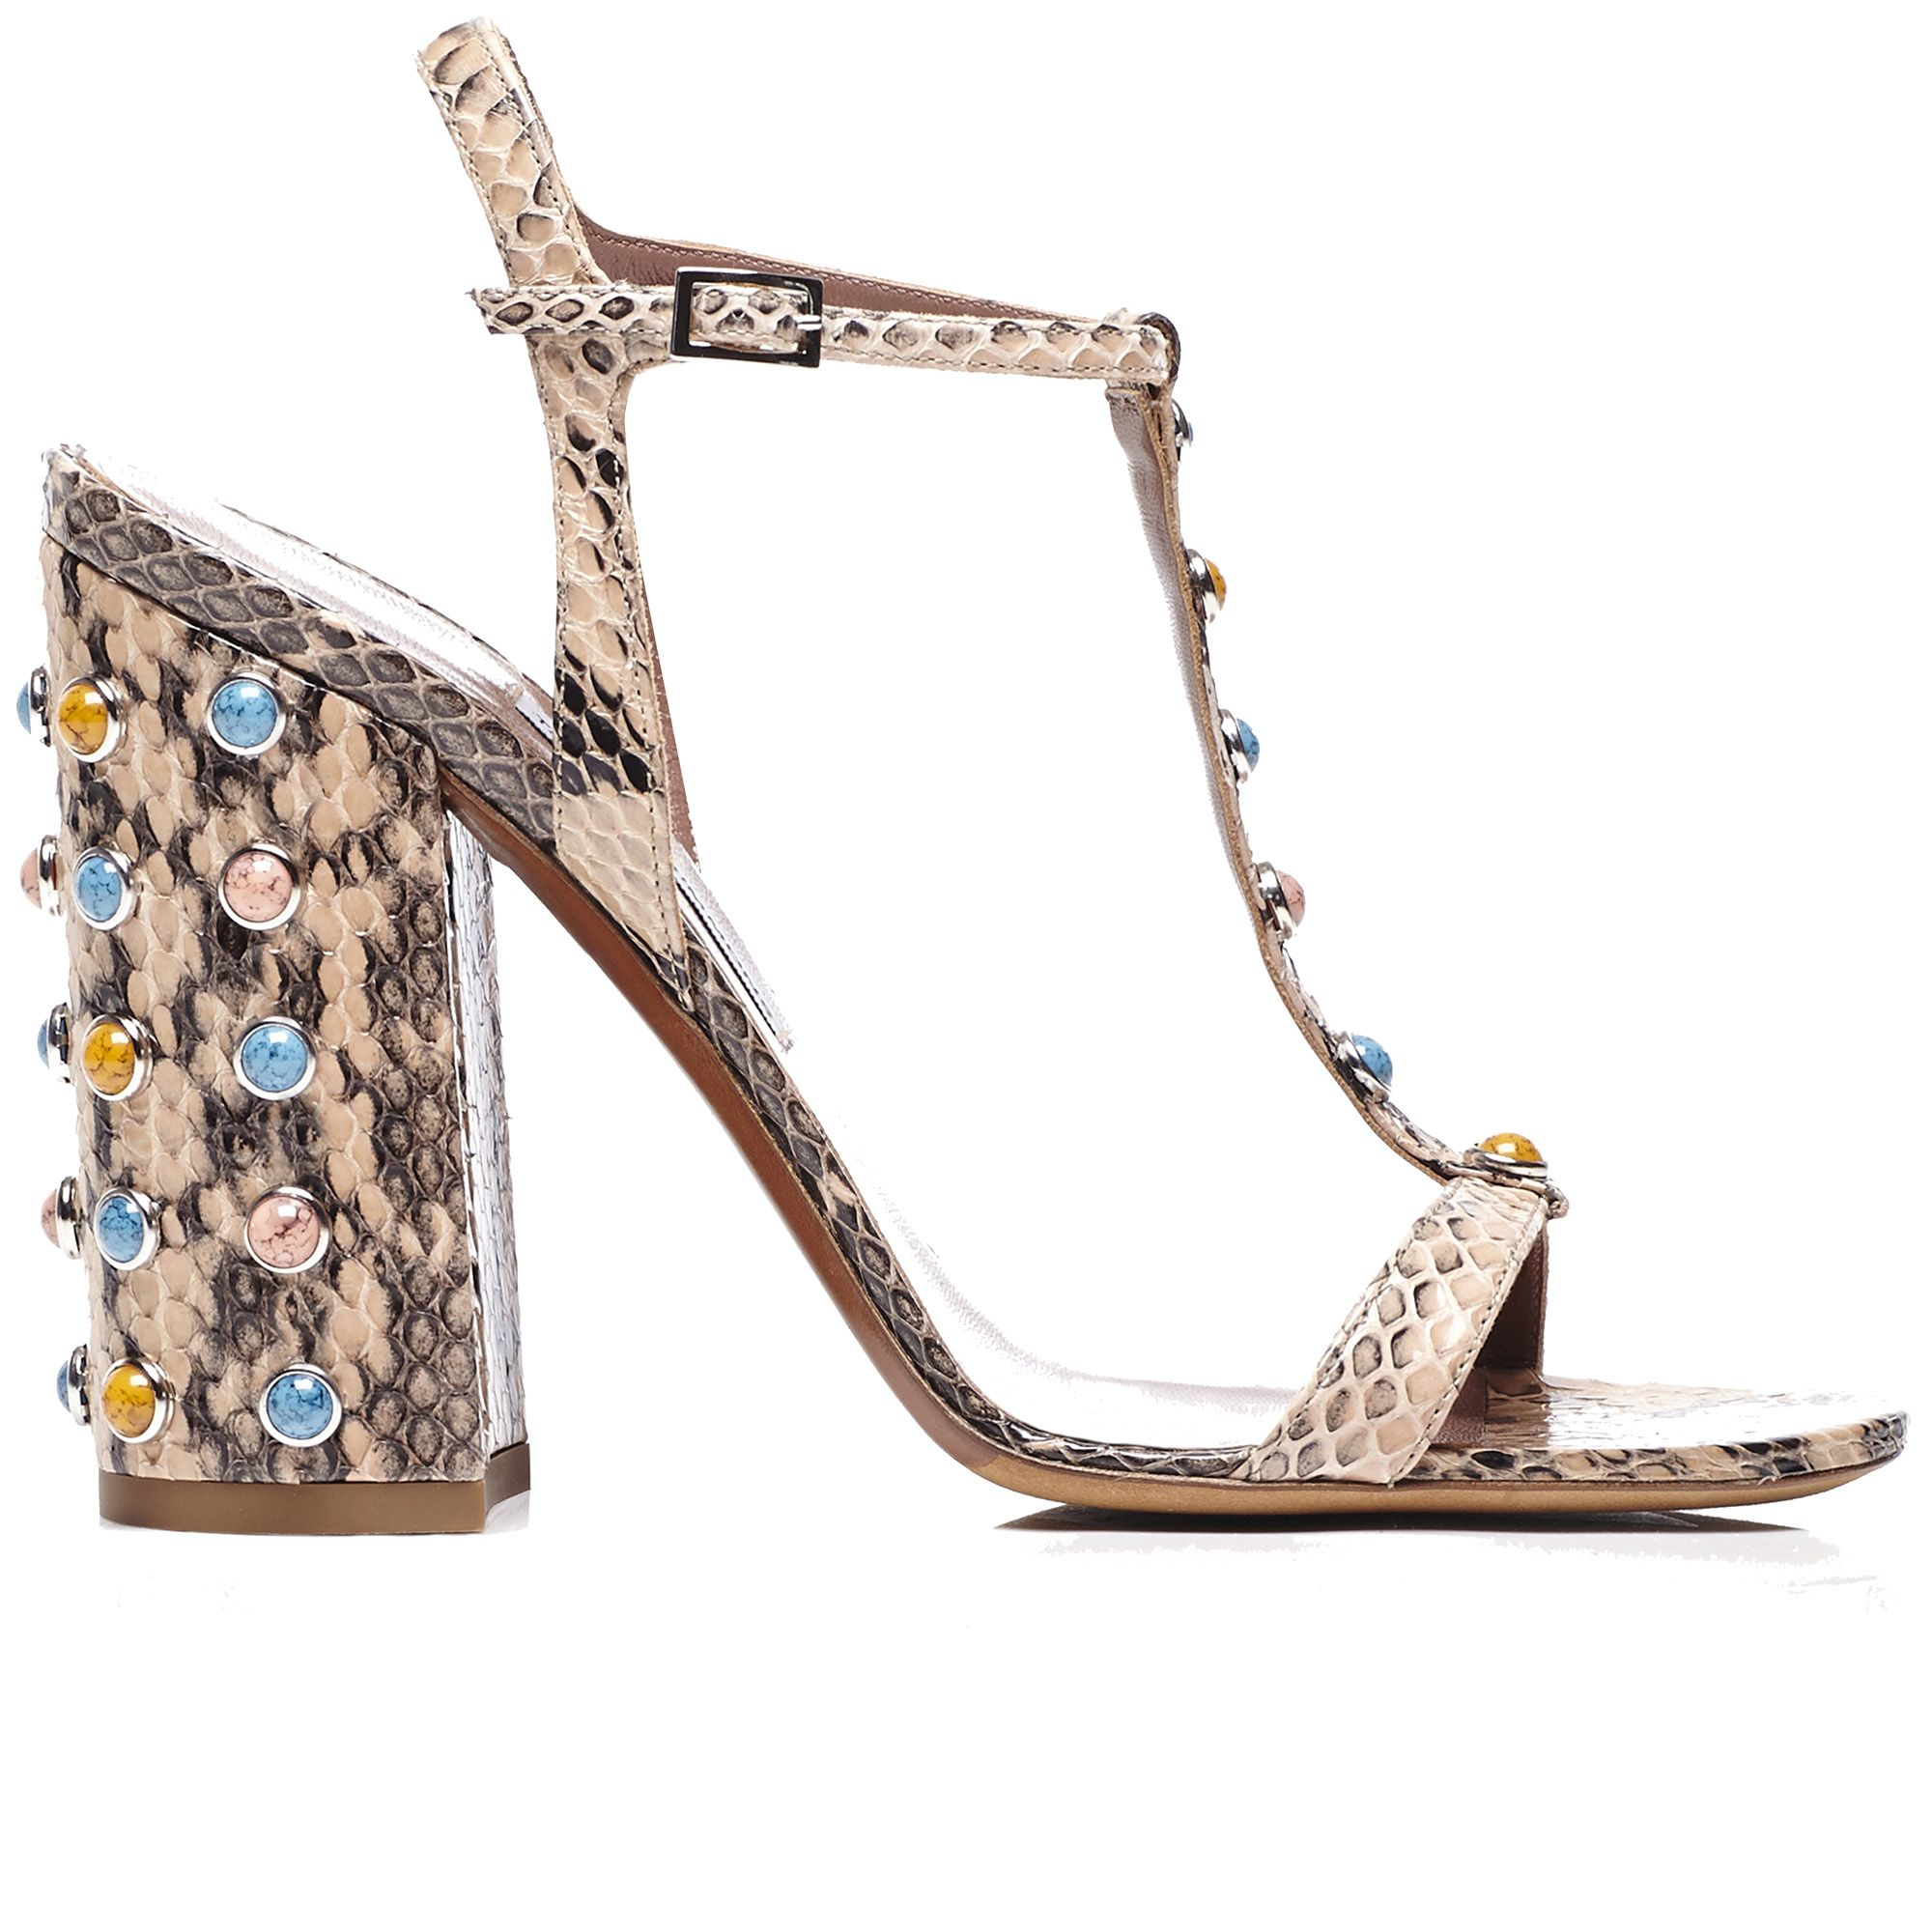 "<strong>Tabitha Simmons </strong>sandal, similar styles available at <a target=""_blank"" href=""http://shop.harpersbazaar.com/designers/tabitha-simmons/"">shopBAZAARcom</a>."